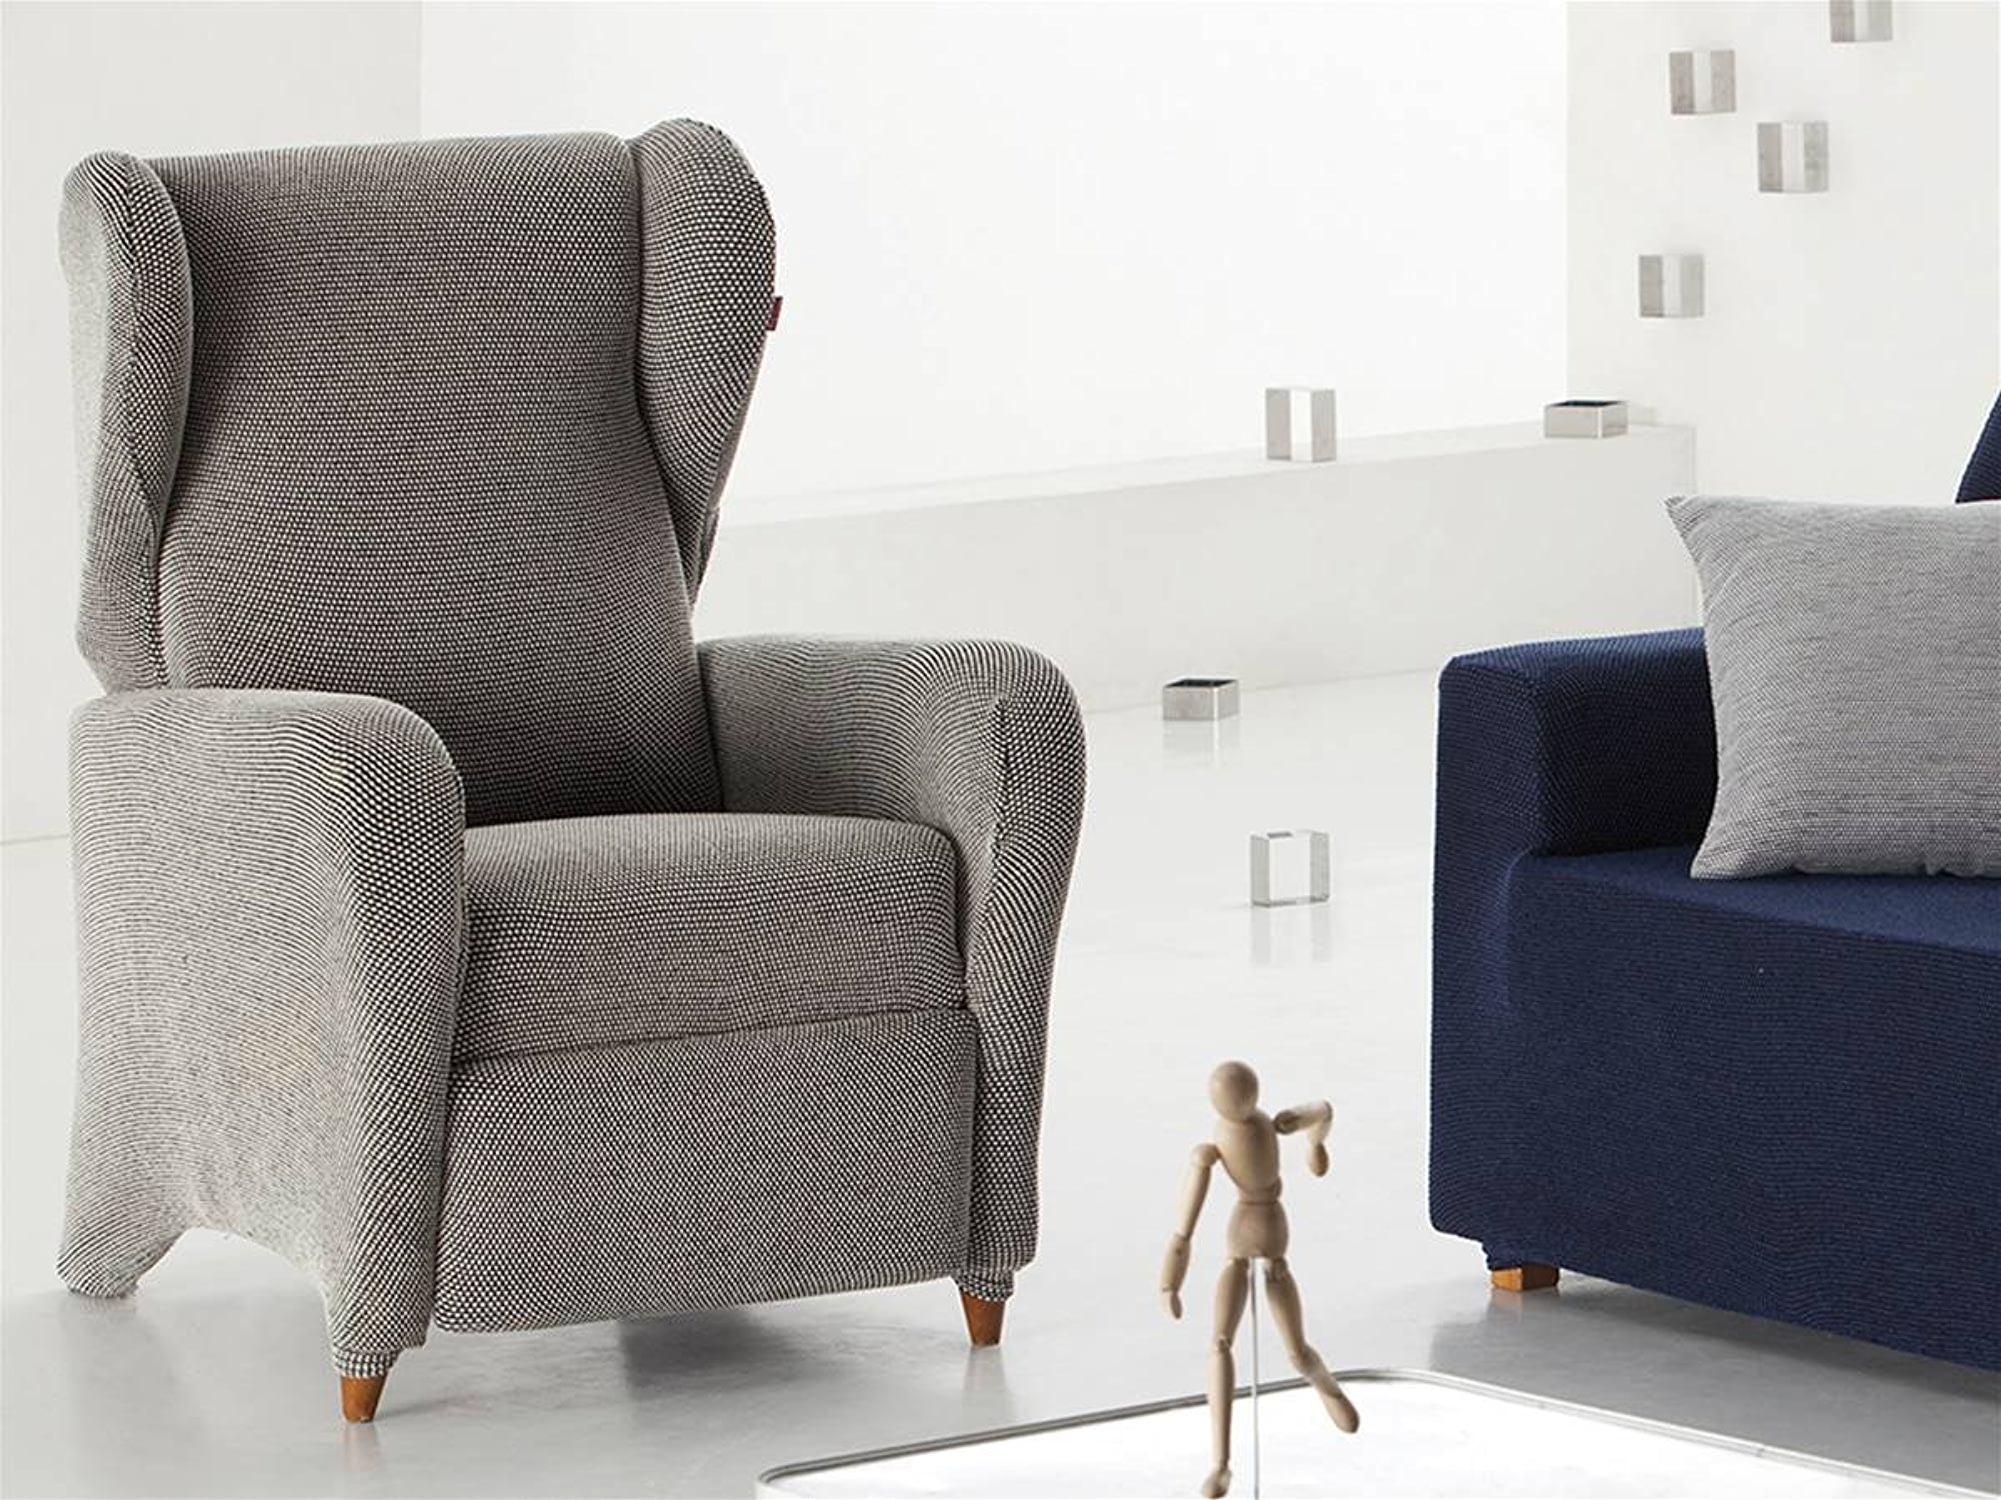 Lanovenanube Housse fauteuil angelo Relax Couleur gris Moderne Relax 1 plaza ecru